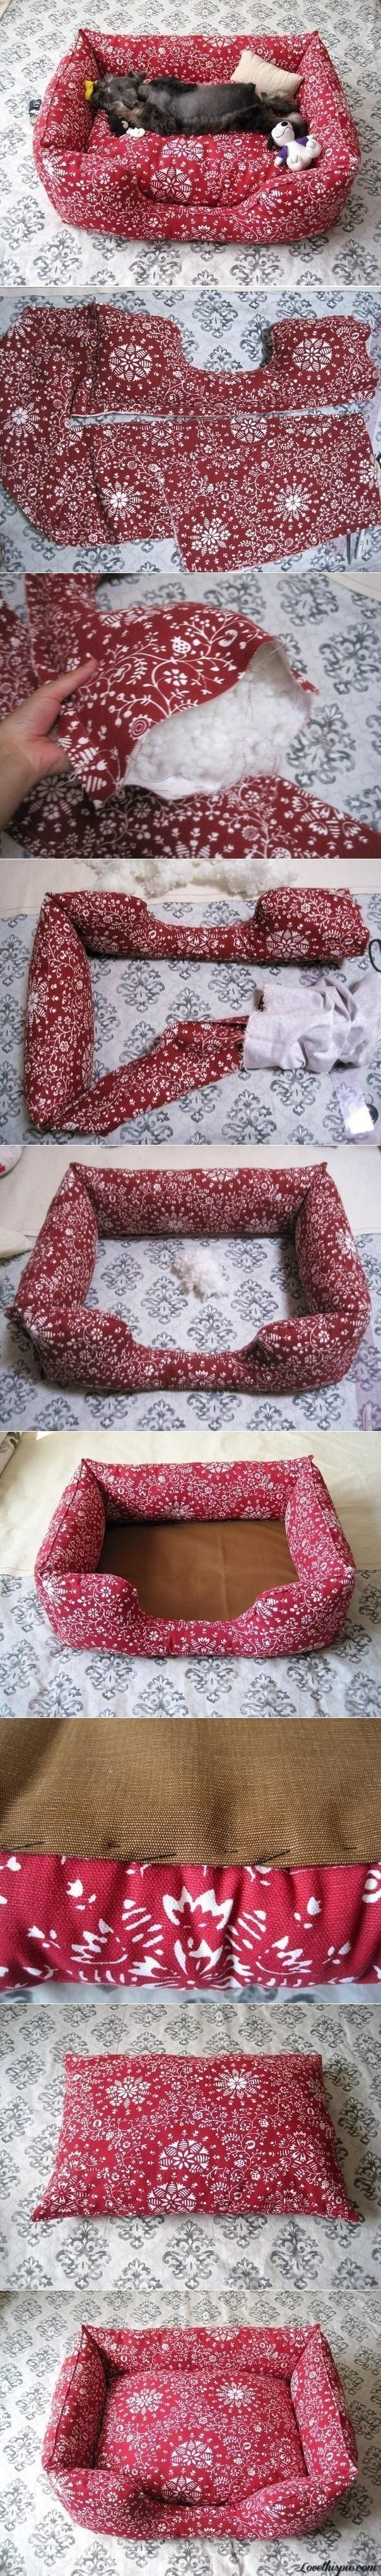 DIY Fabric Pet Sofa Pictures, Photos, and Images for Facebook, Tumblr, Pinterest, and Twitter